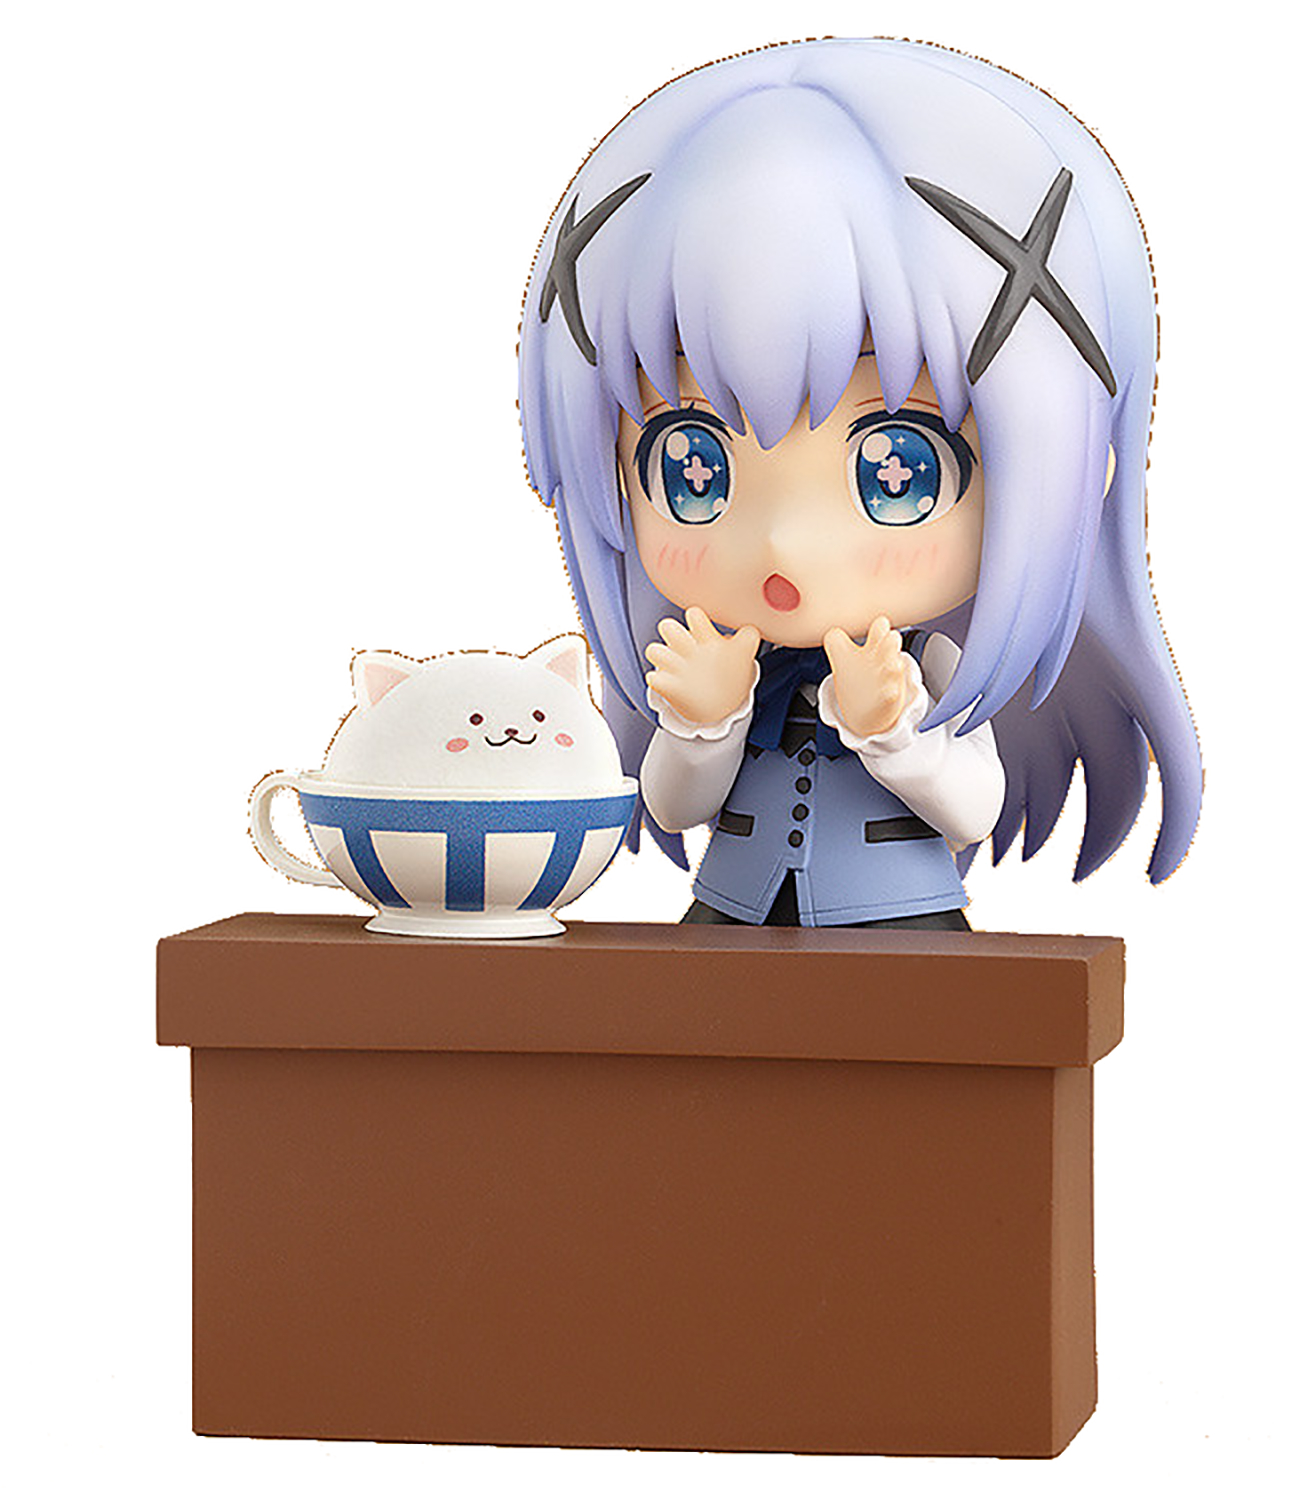 IS THE ORDER A RABBIT CHINO NENDOROID